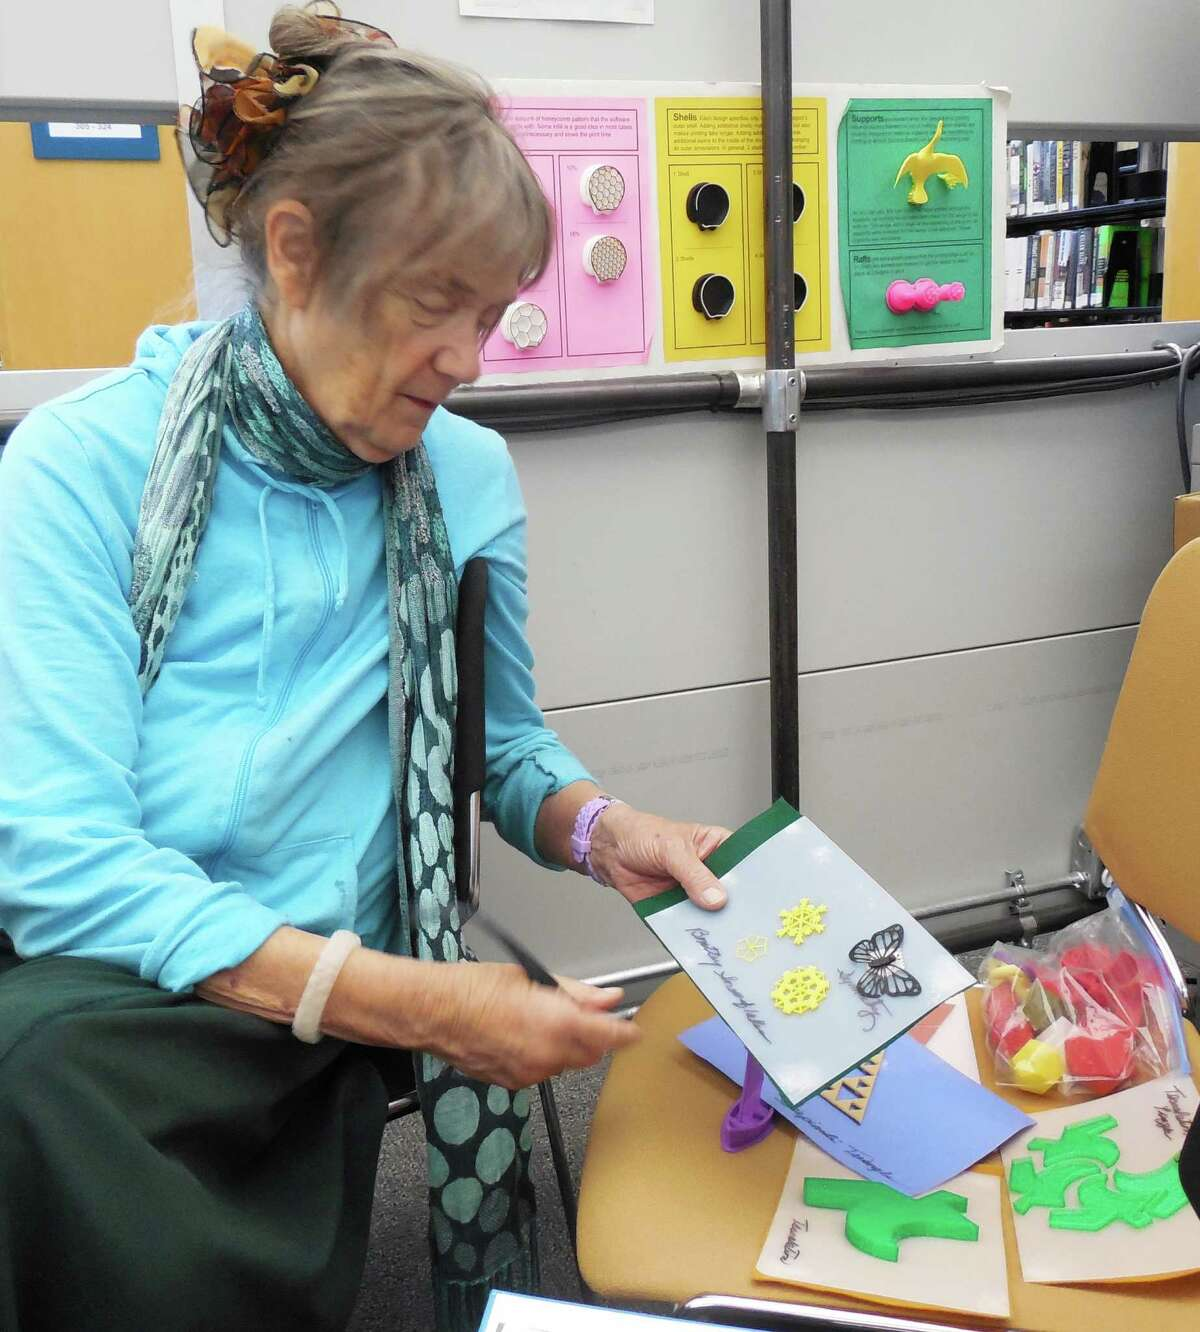 Micki McCabe shows some of the items she's made using the 3D printer at the Westport Library. McCabe, an educational consultant with the Connecticut Braille Association, Inc., is putting the 3D characters into picture books for young blind children.